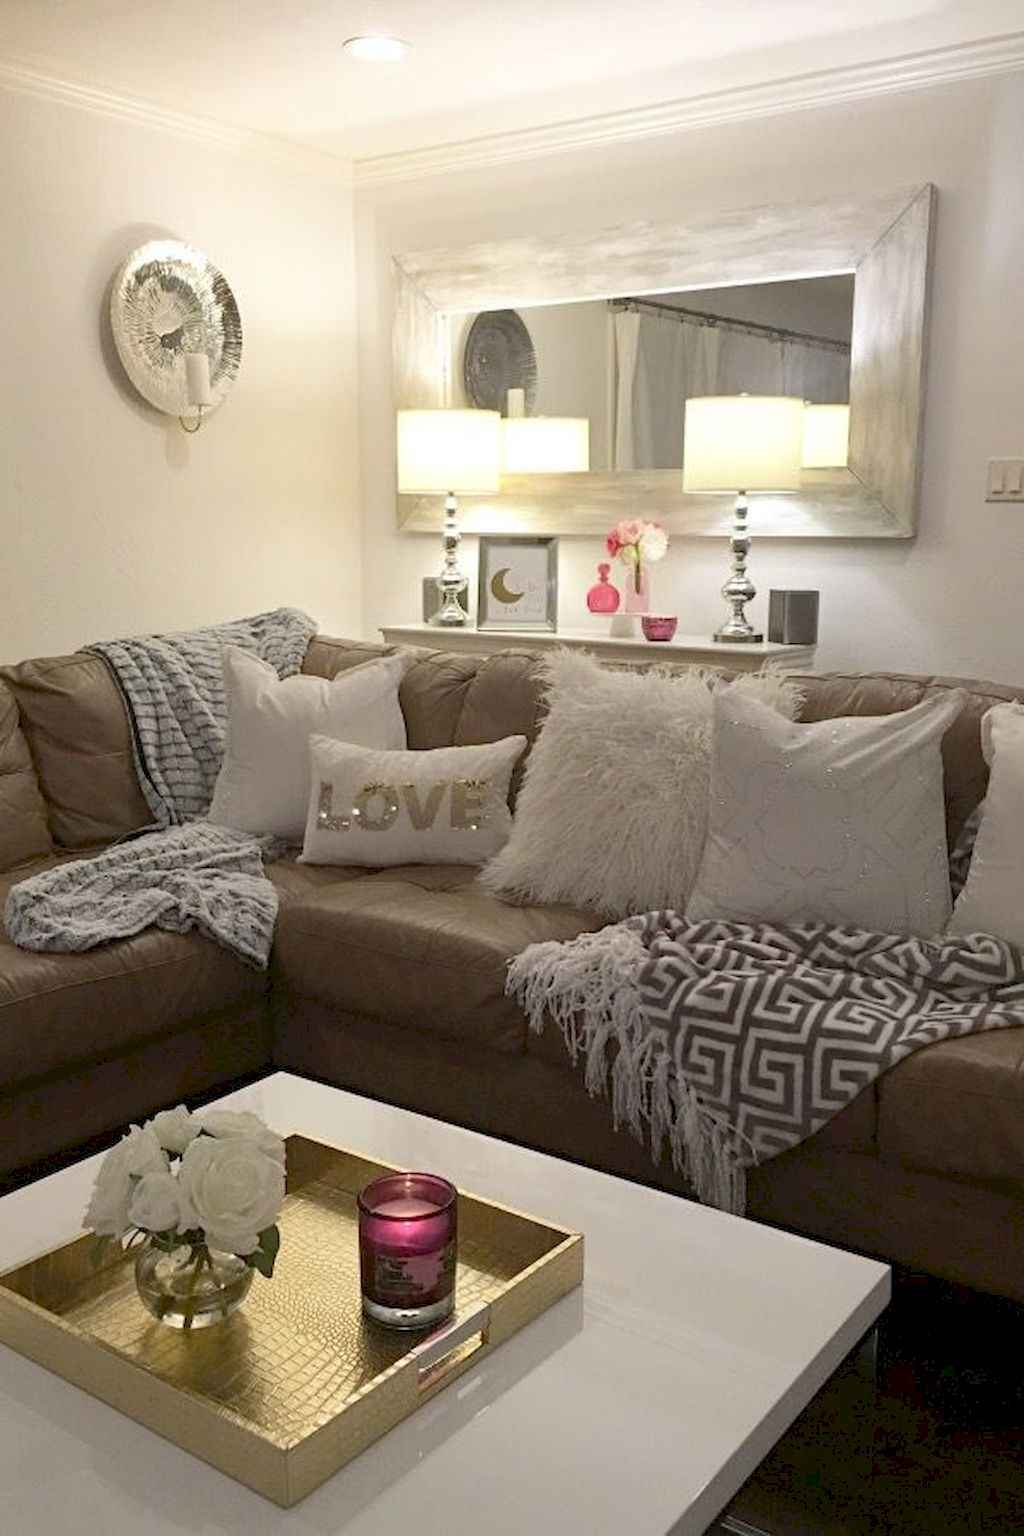 Clever college apartment decorating ideas on a budget (65)